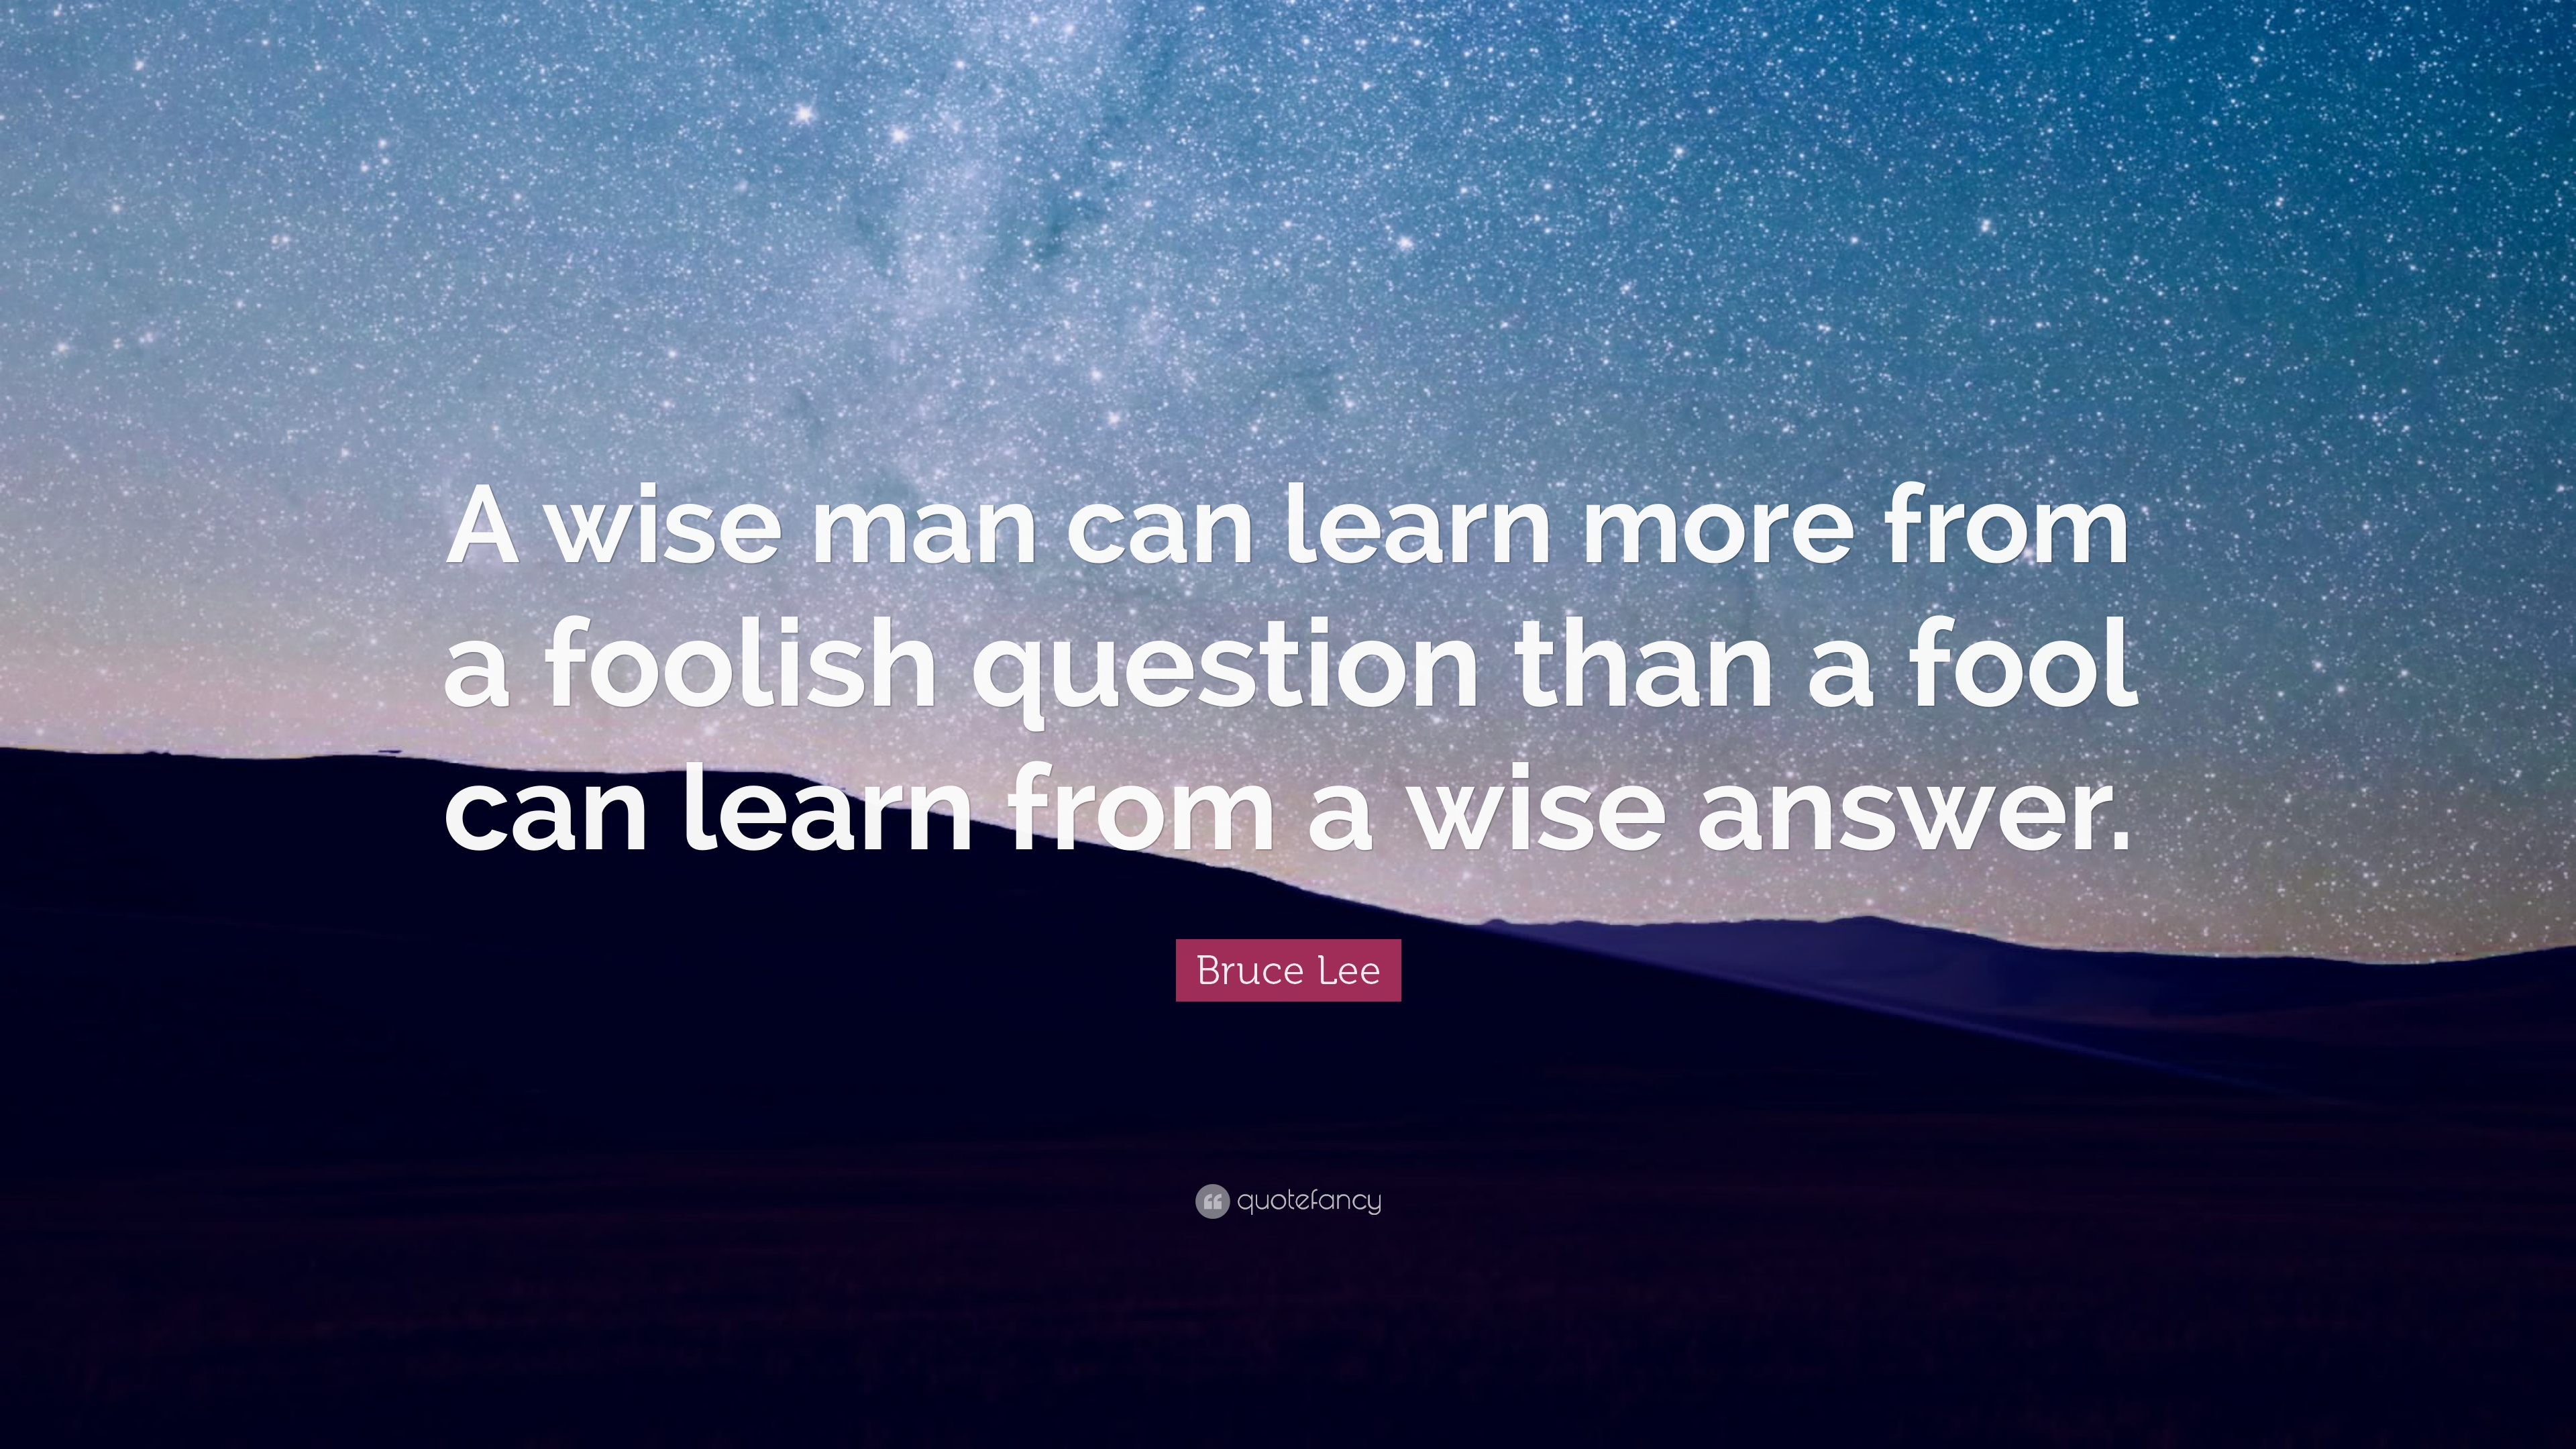 Did Bruce Lee say: 'A wise man can learn more from a ...